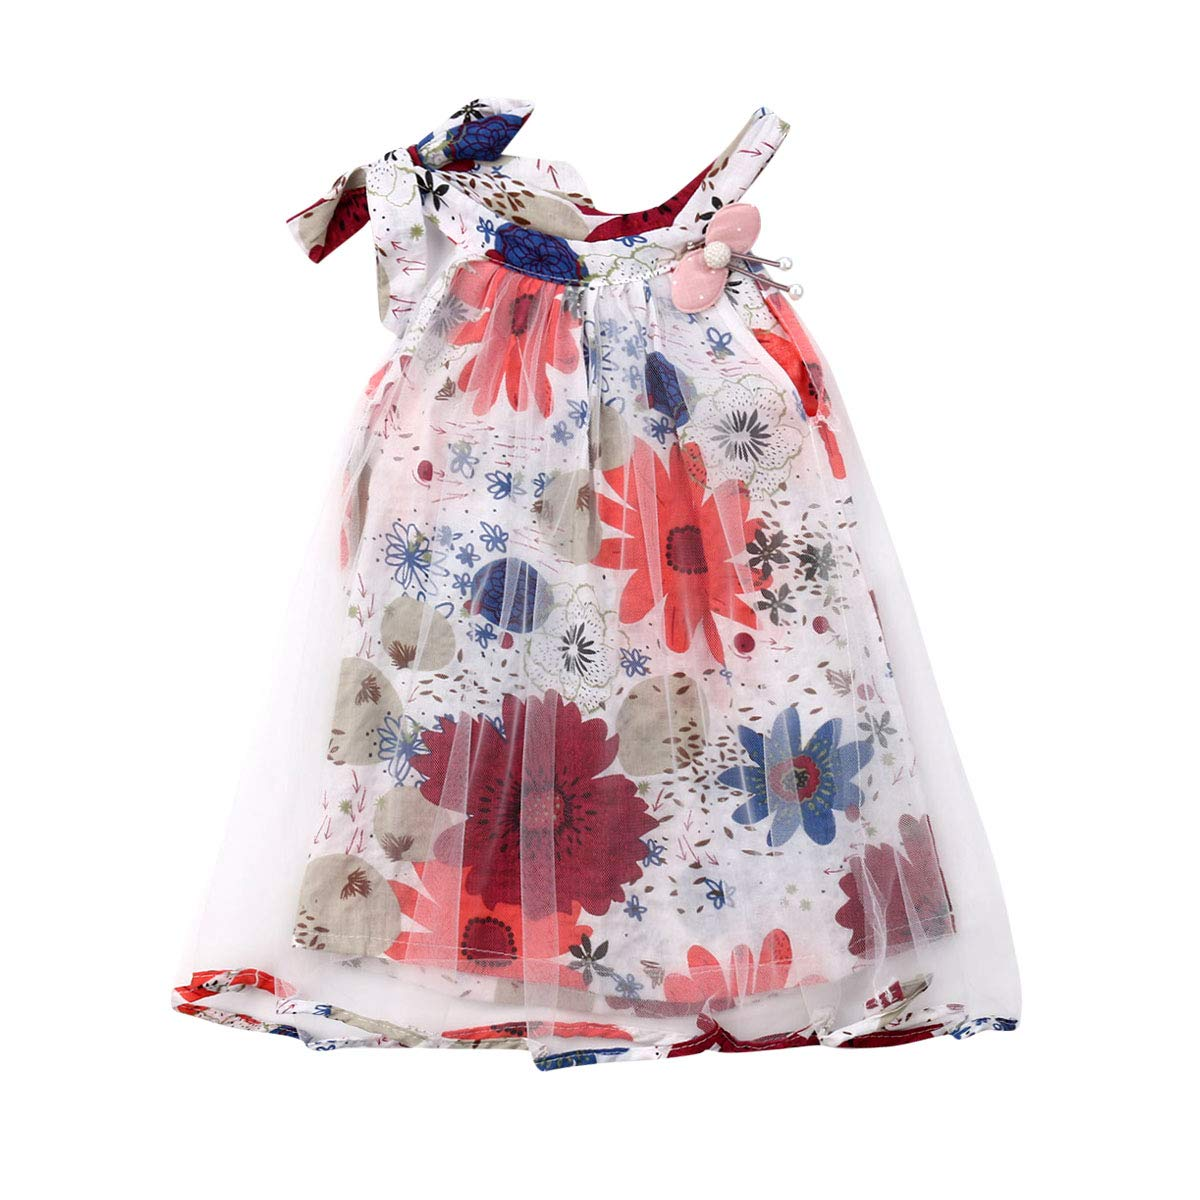 Shawnlen Toddler Infant Baby Girl Dresses Casual Spring Summer Floral Flower Printing Lace Dress for Party Wedding Pageant 0.5-3 Years